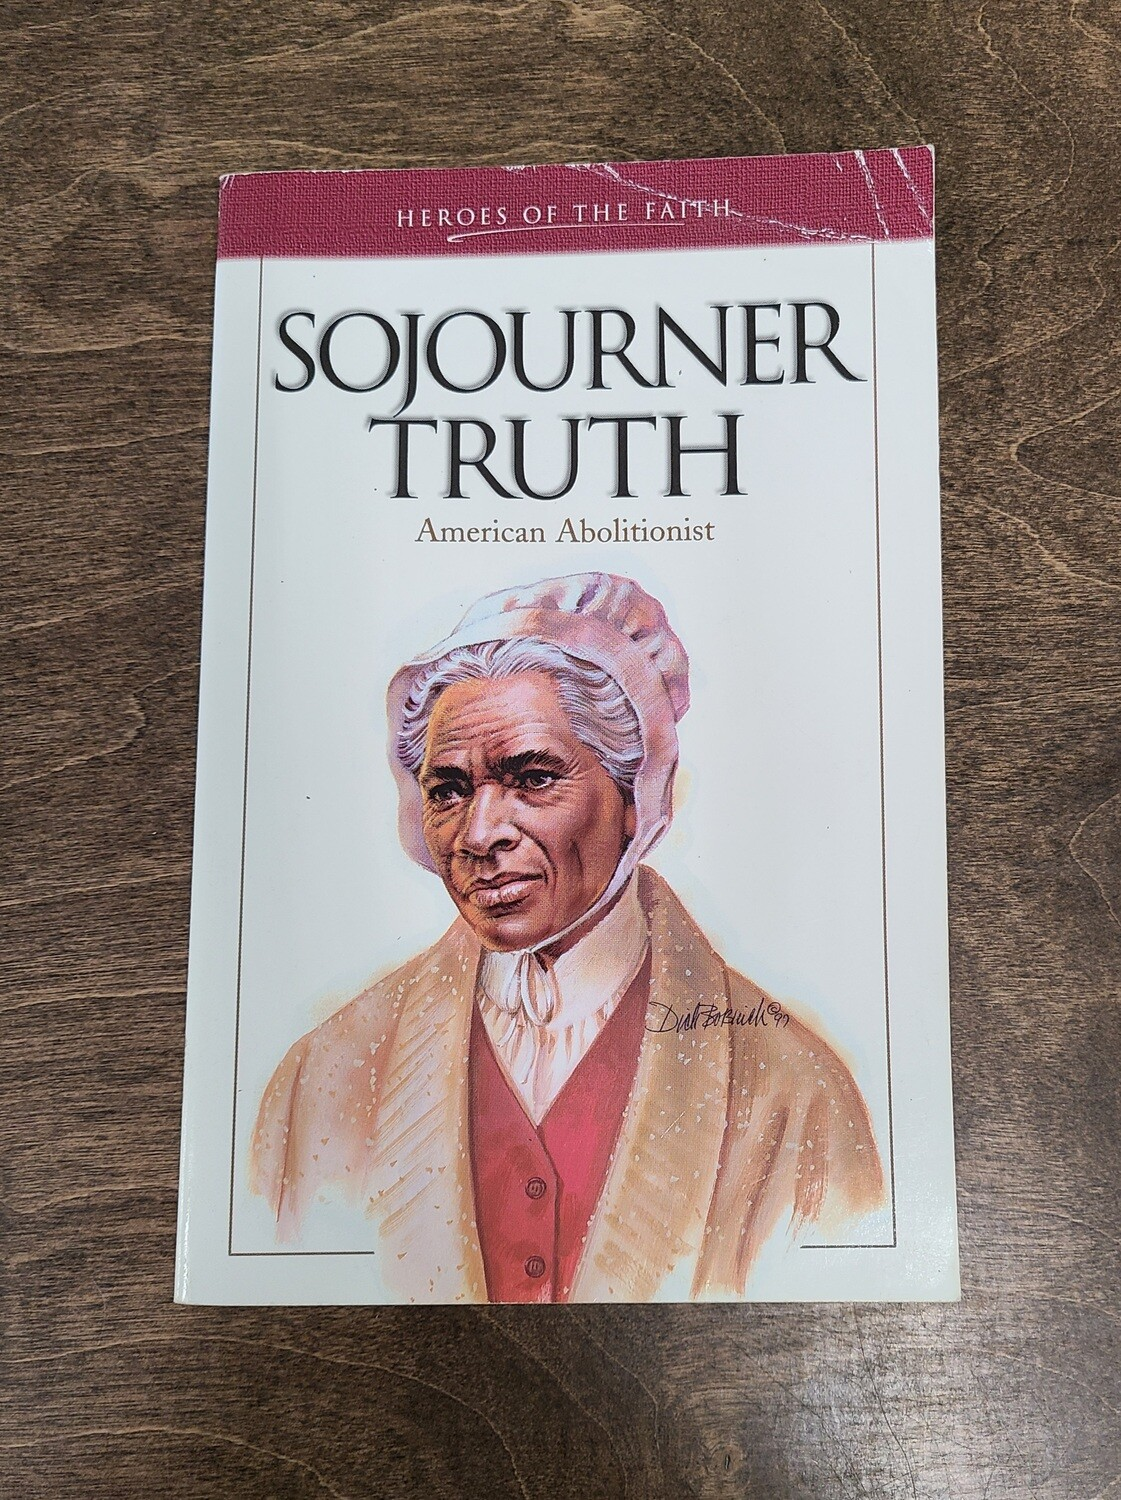 Sojourner Truth by W. Terry Whalin